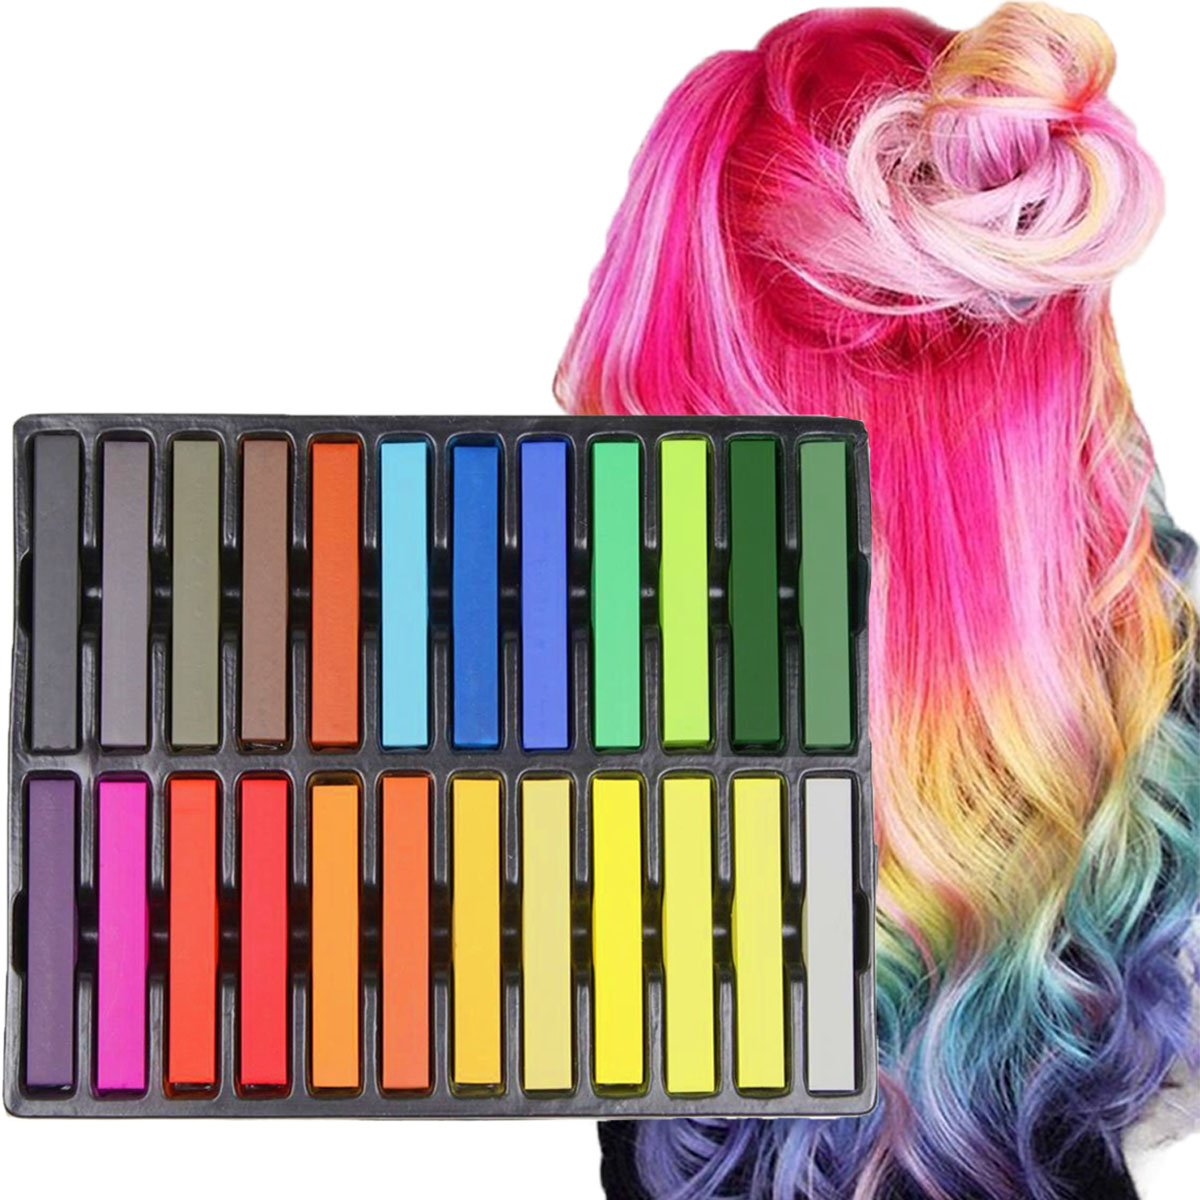 Hair Chalk Set, Kyerivs 24 Color Temporary Hair Pastels For Kids Hair  Dyeing Party and Cosplay DIY, Works...